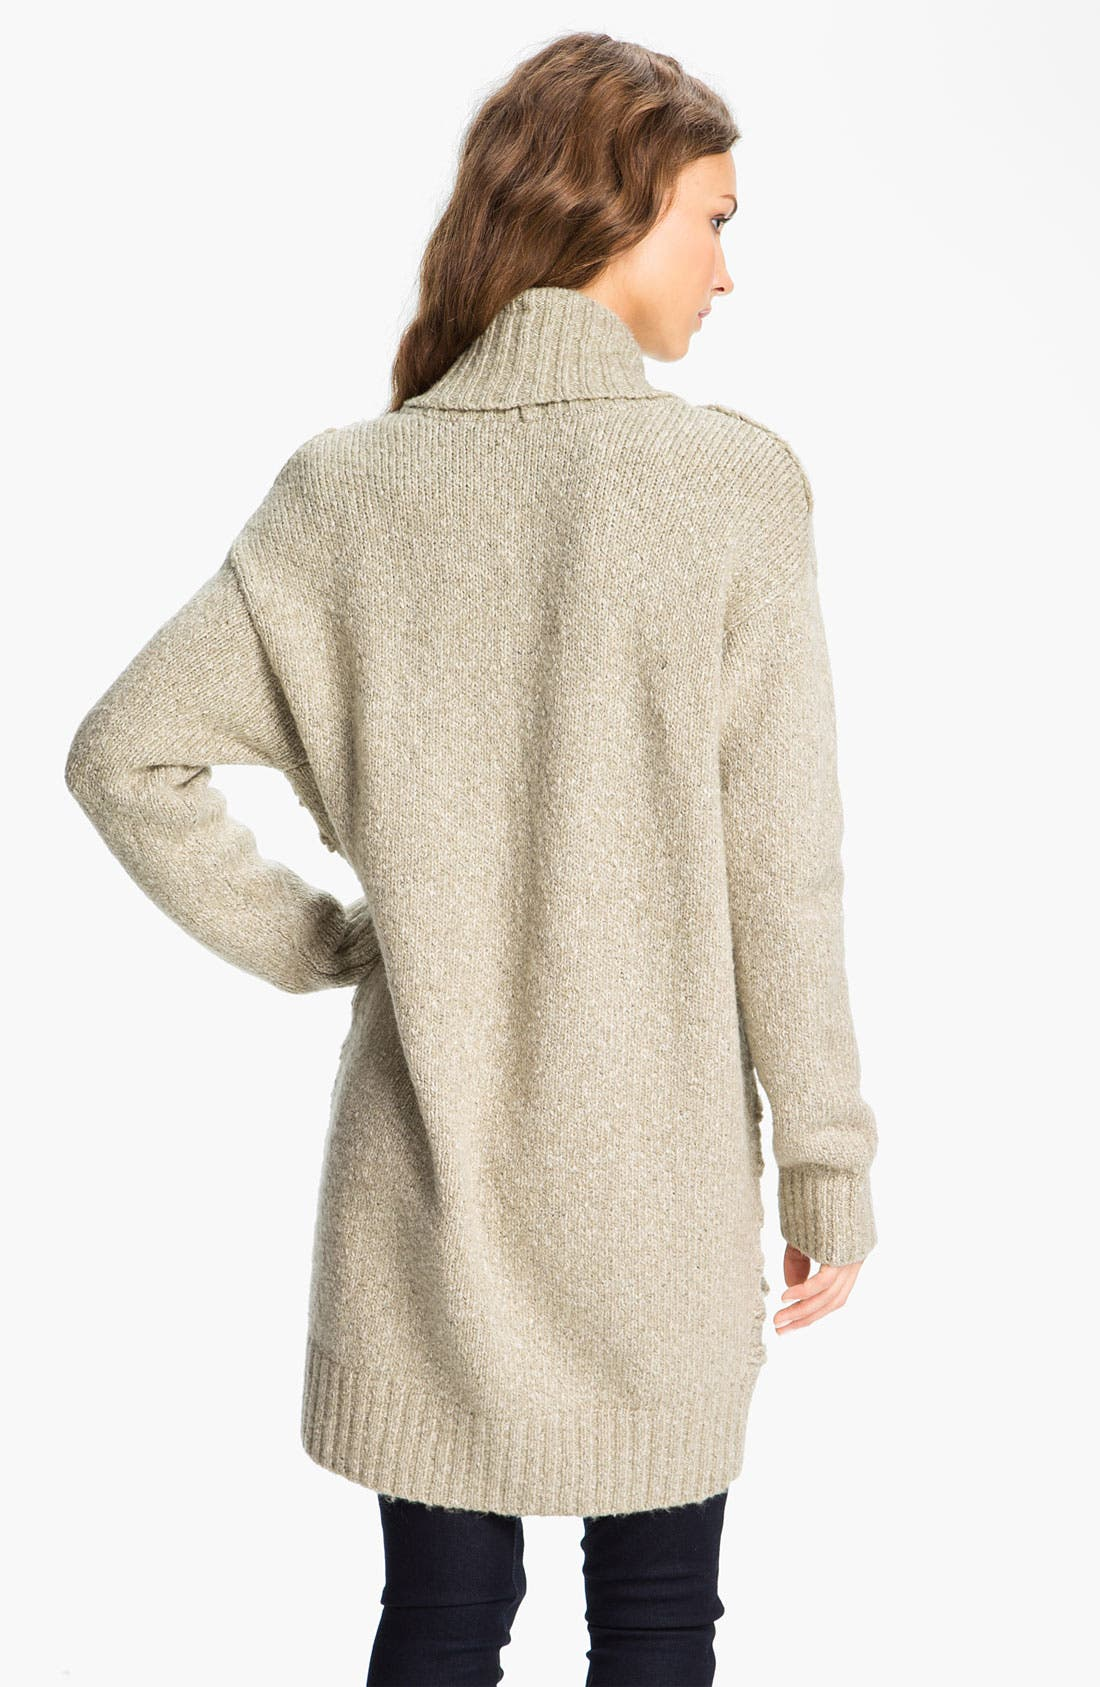 Scallop Knit Oversized Cardigan,                             Alternate thumbnail 2, color,                             200